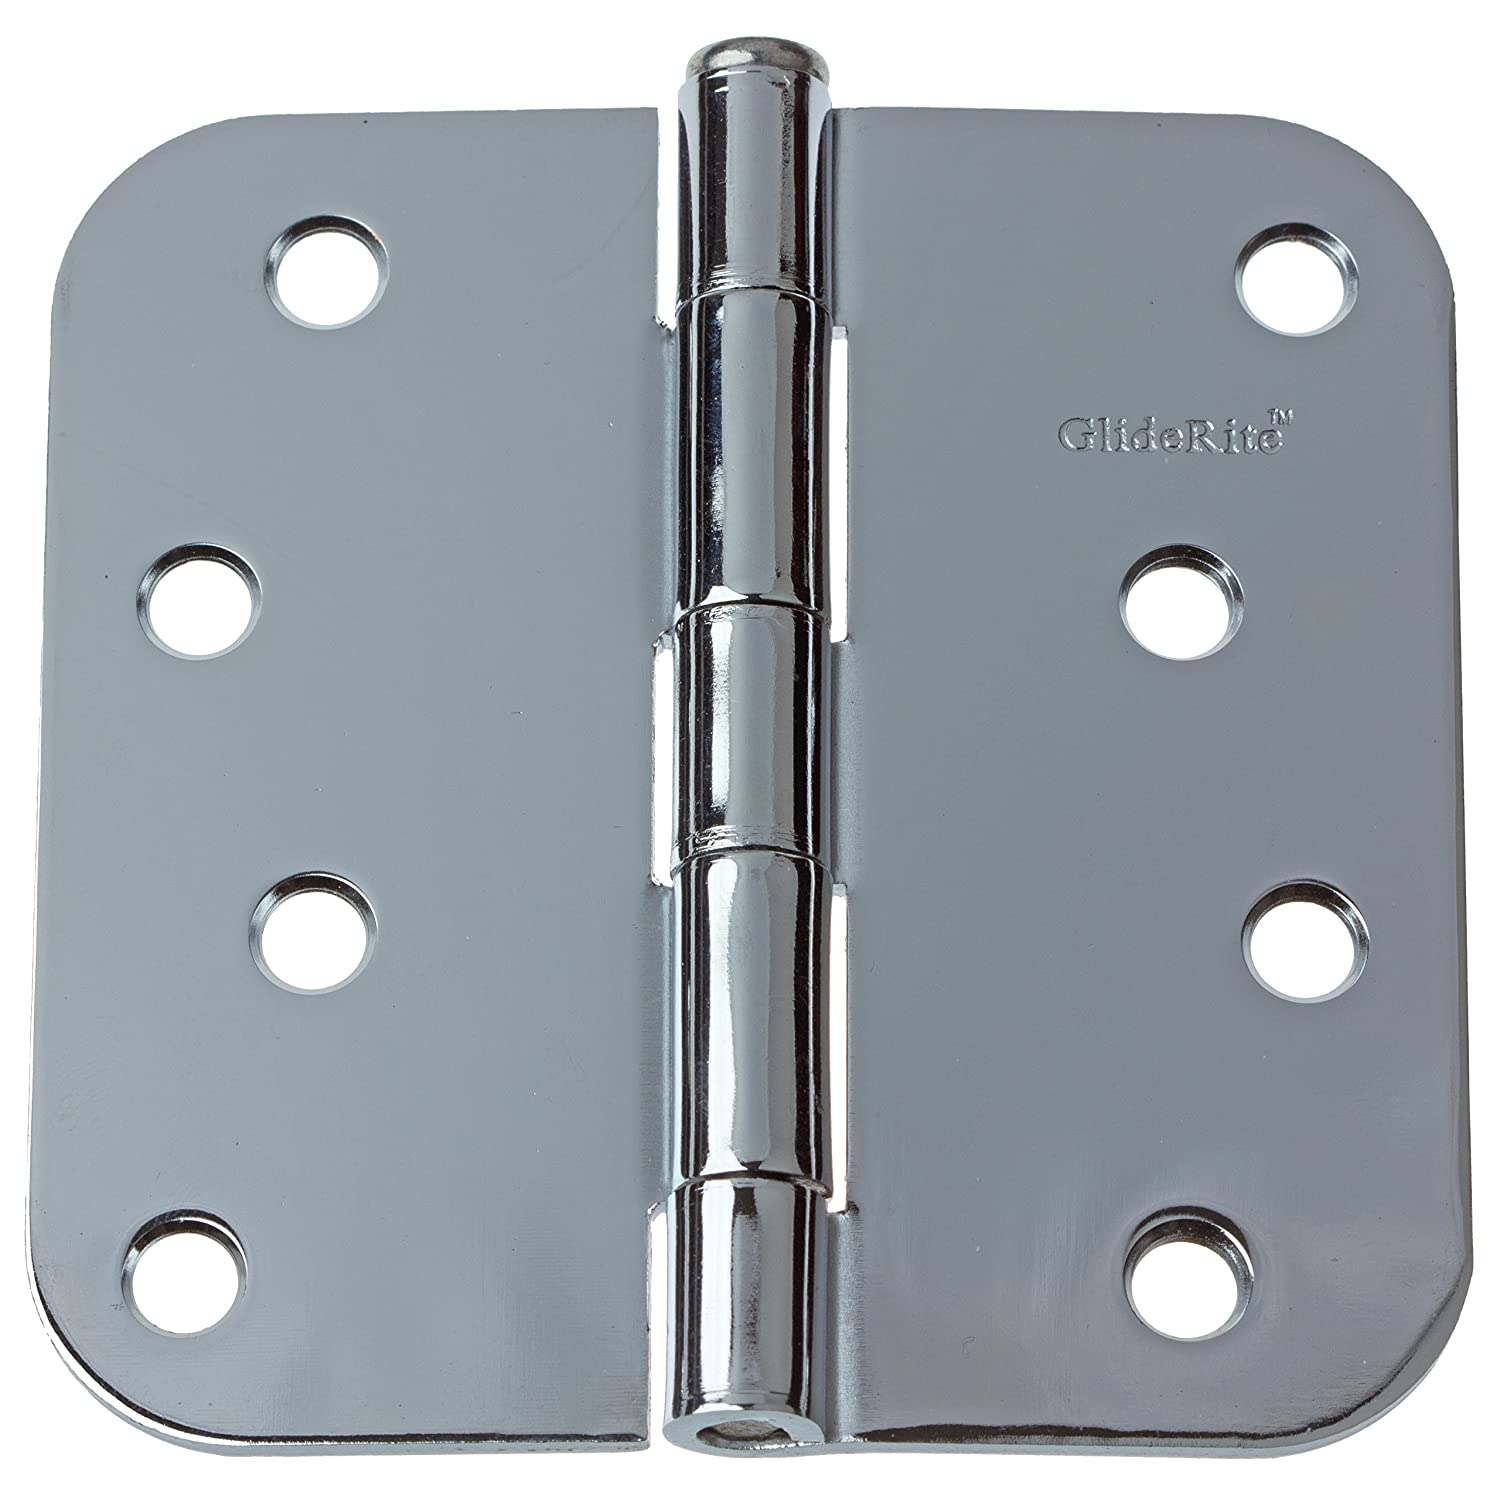 GlideRite Hardware 4058-PC-12 4 inch Steel Door Hinges 0.625-inch Radius Polished Chrome Finish 12 Pack